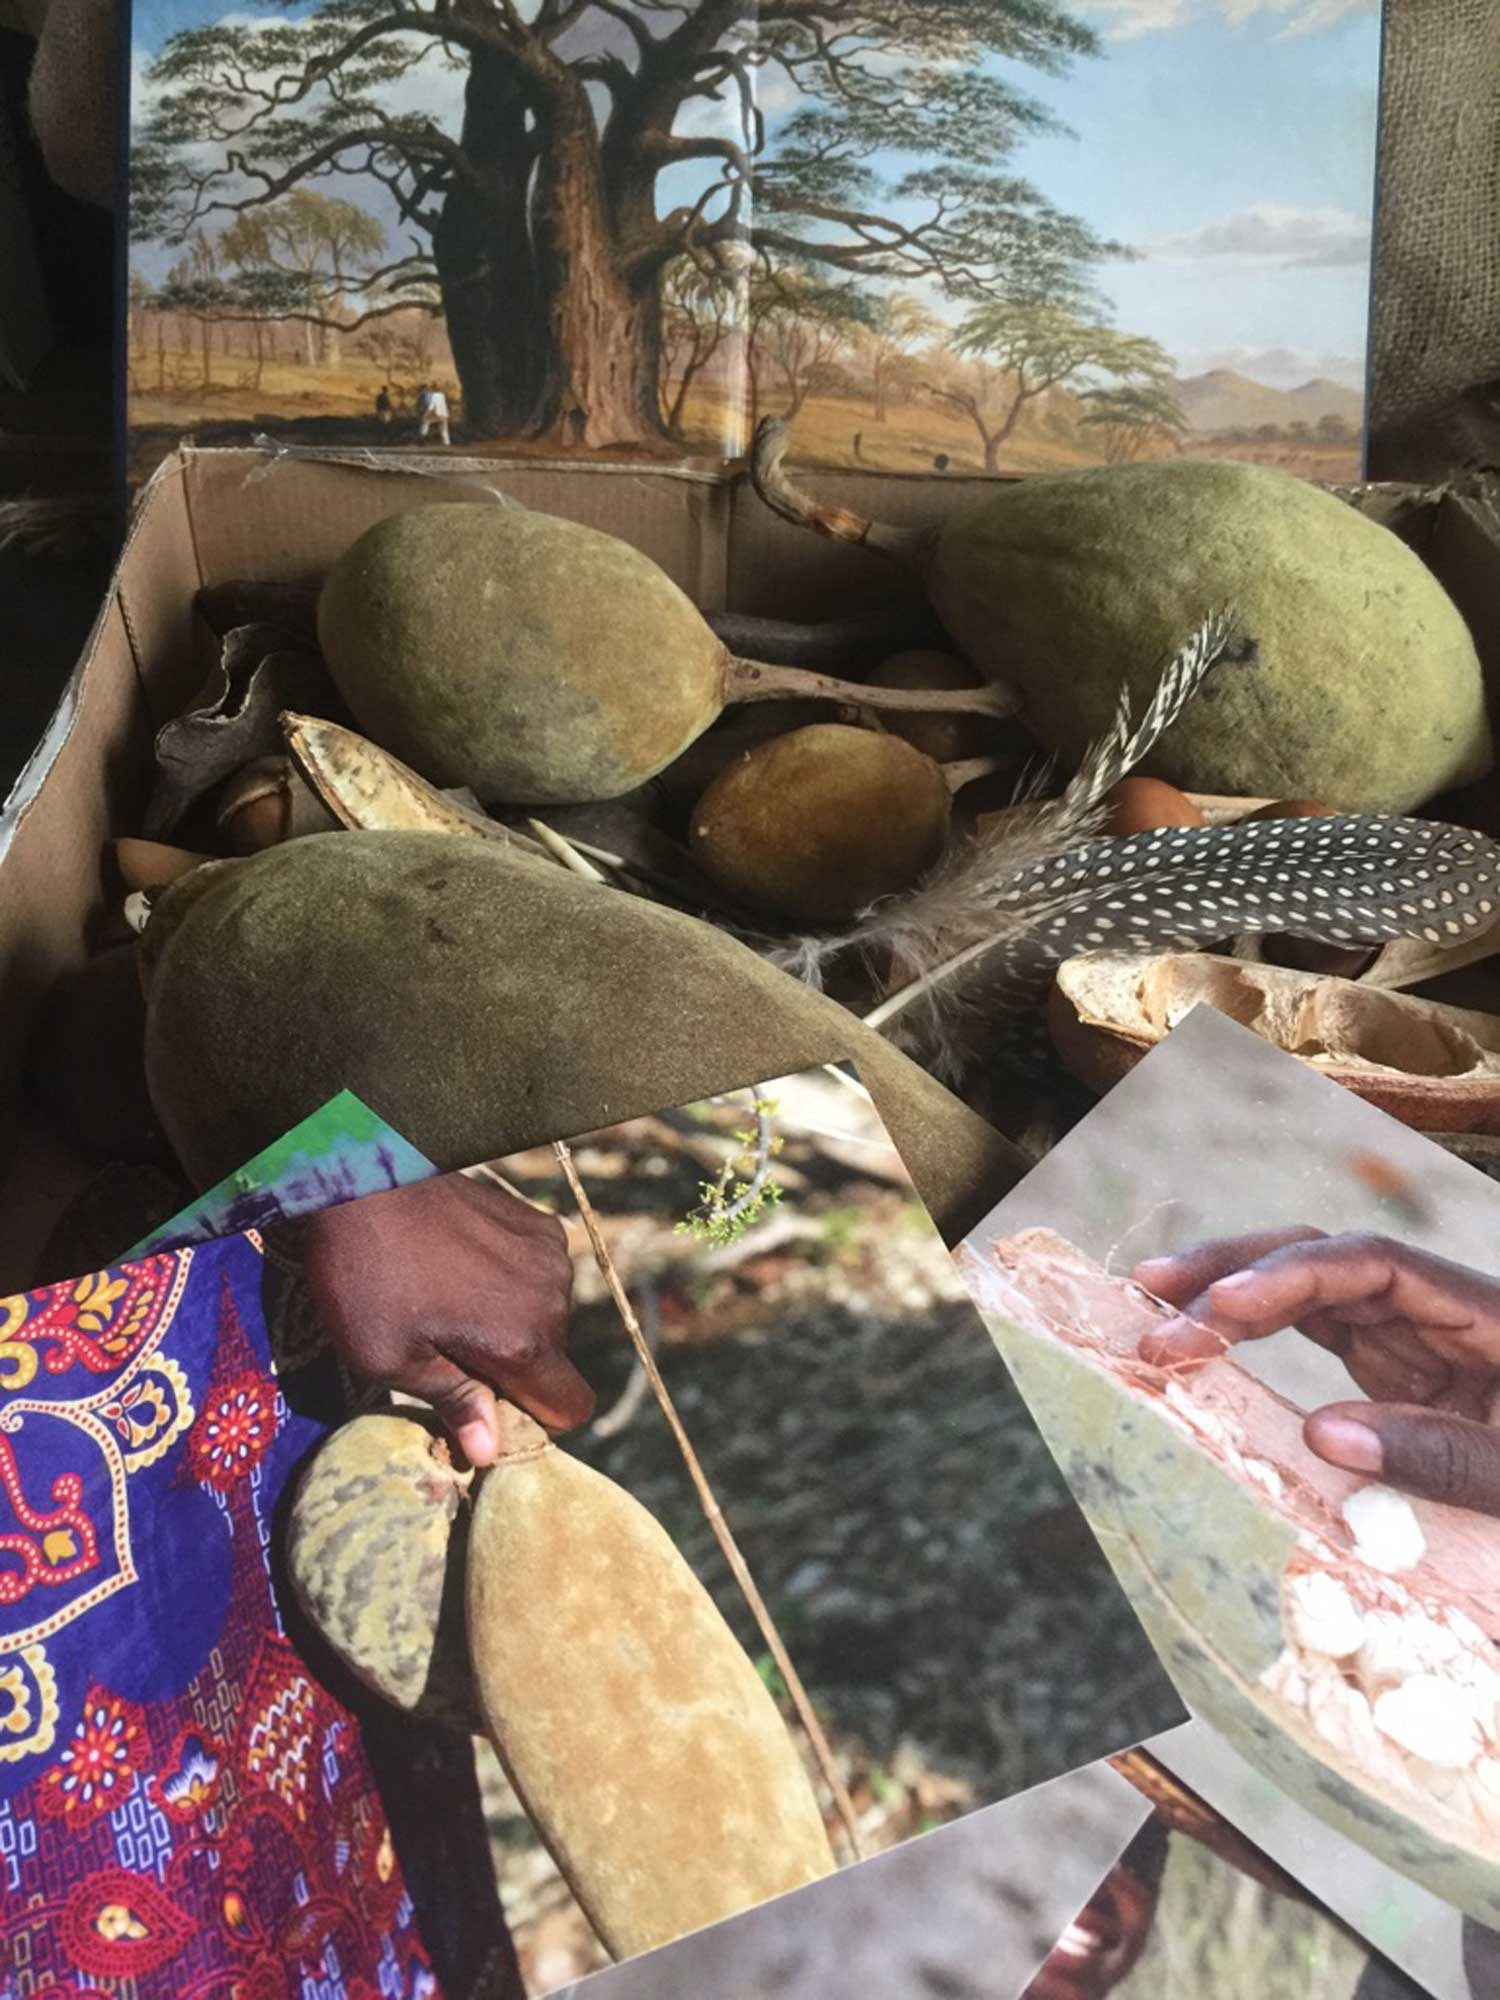 Baobabs, Guinea Fowl Feathers and seed pods from Zimbabwe